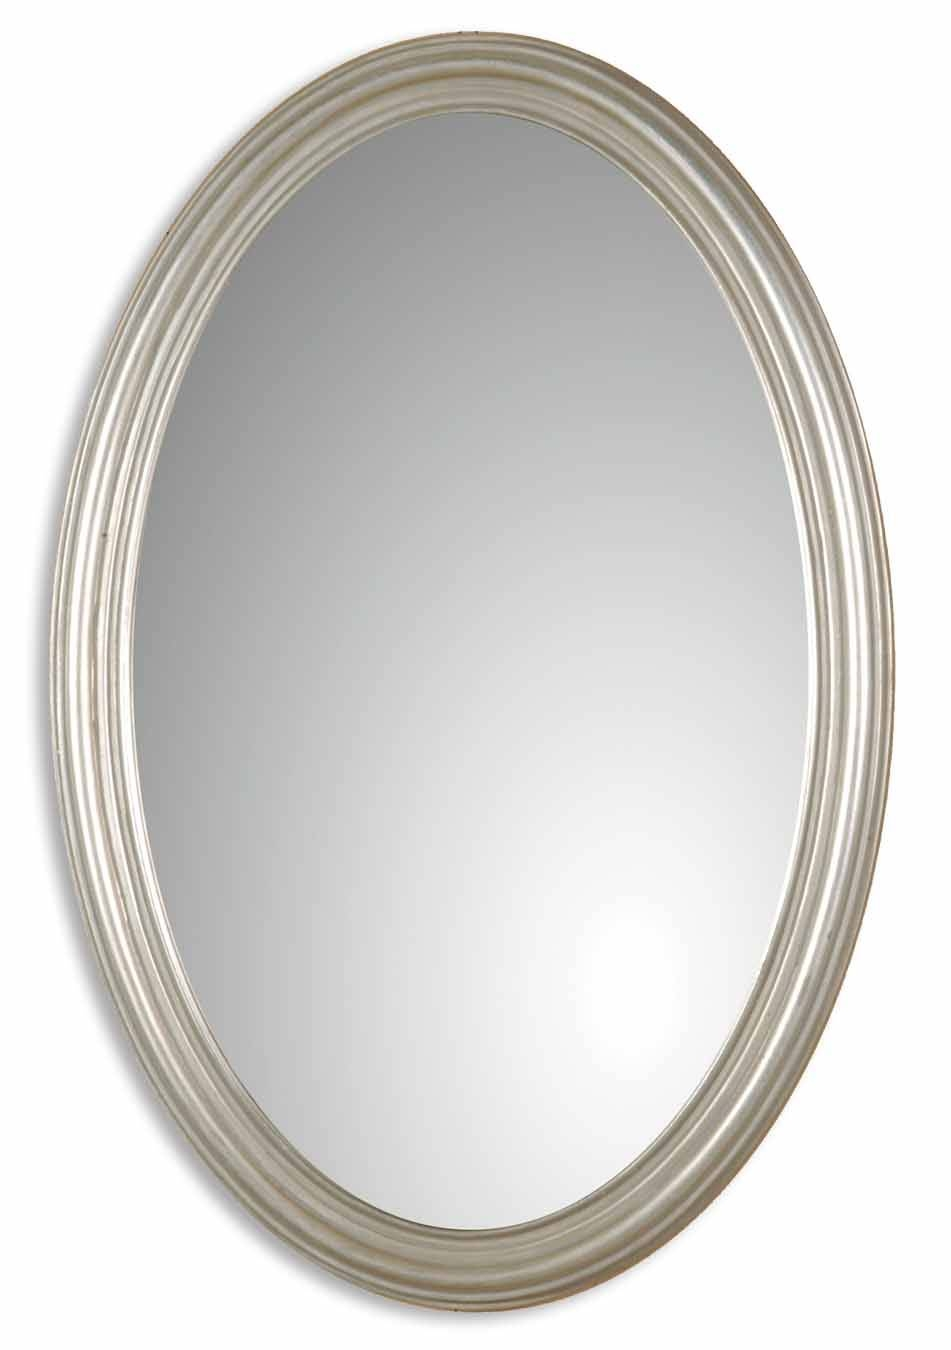 Uttermost Franklin Oval Silver Mirror 08601 P for Silver Oval Mirrors (Image 24 of 25)